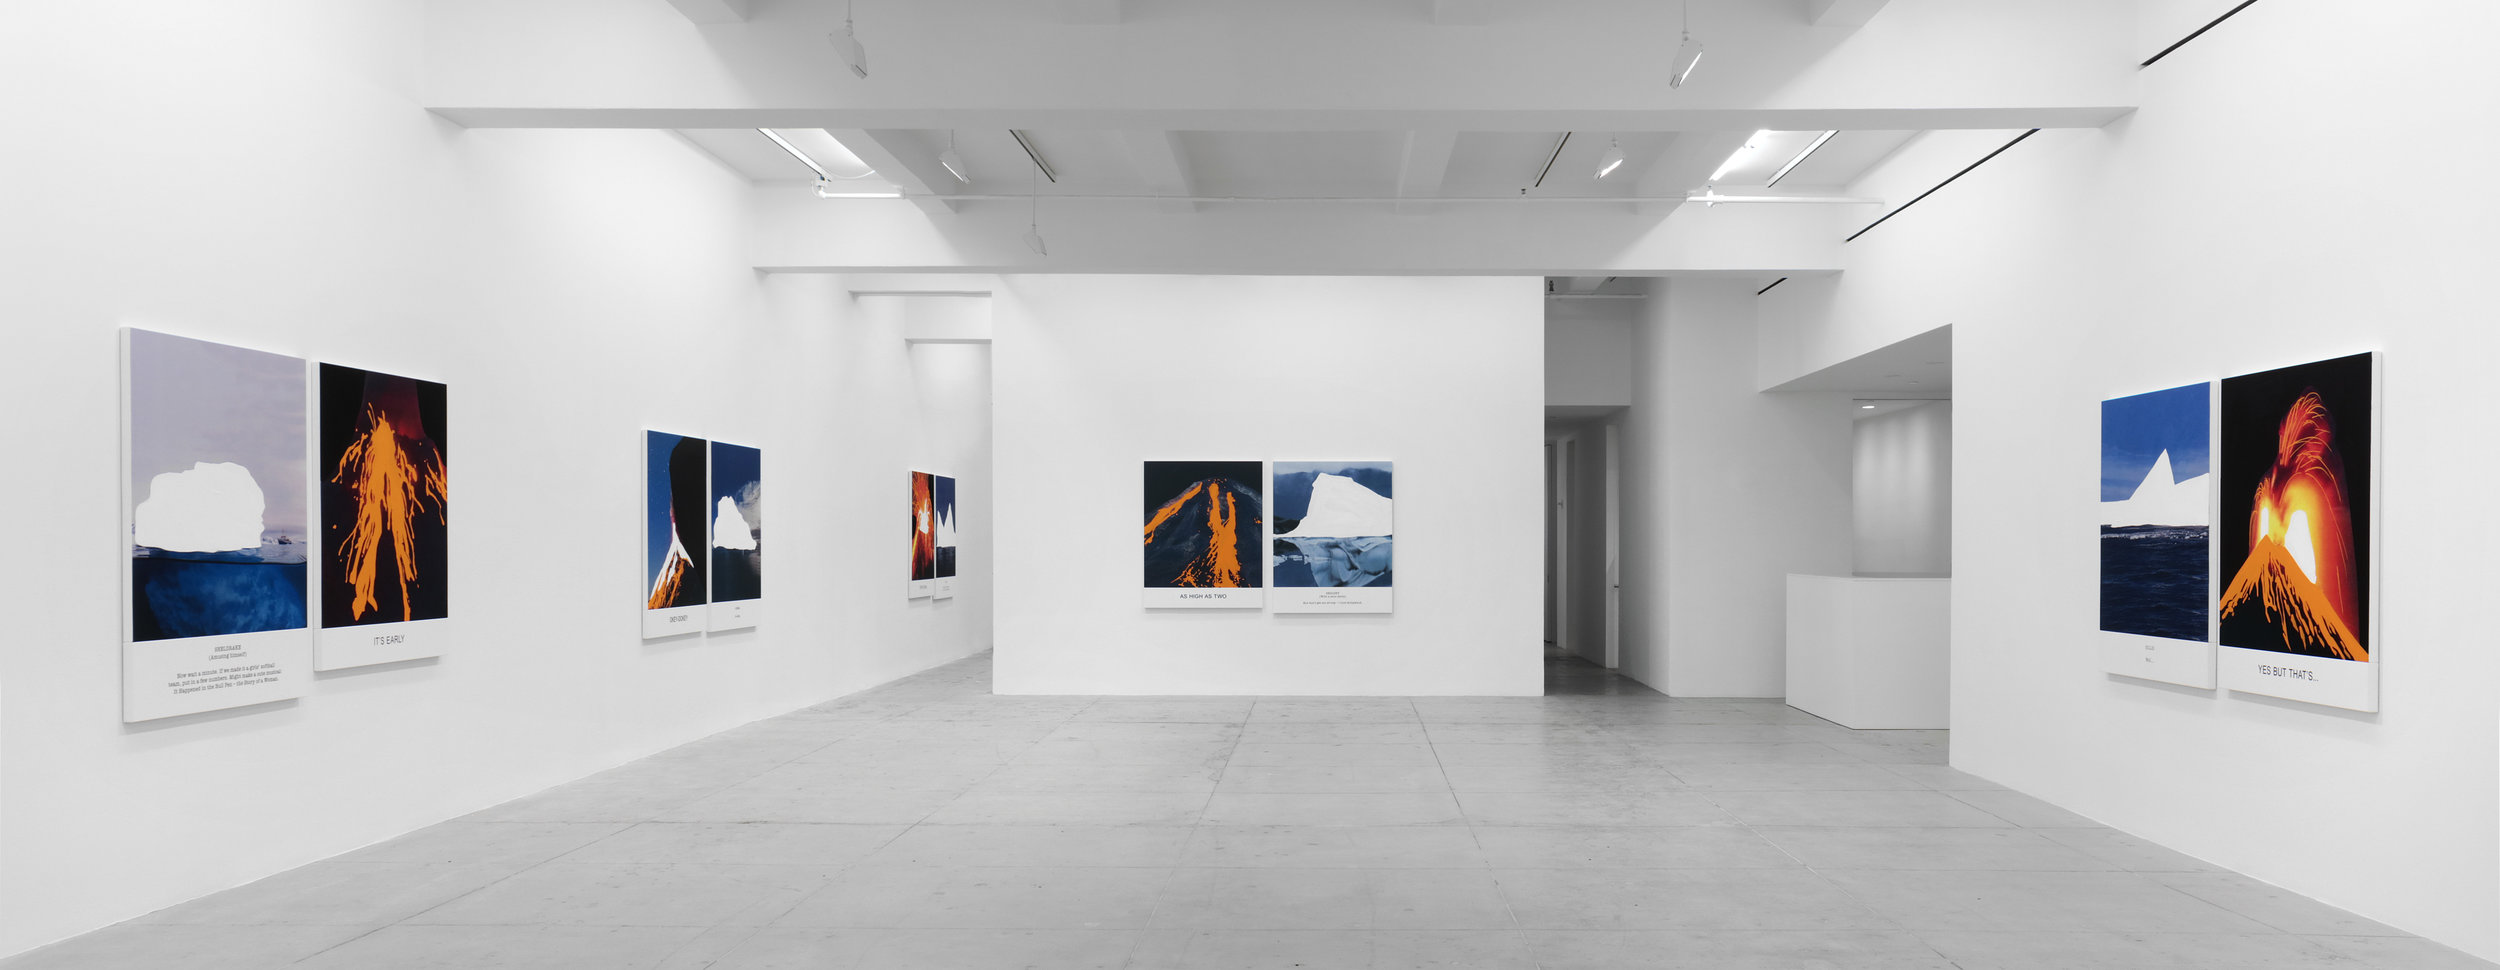 Installation view. Courtesy of Marian Goodman Gallery.